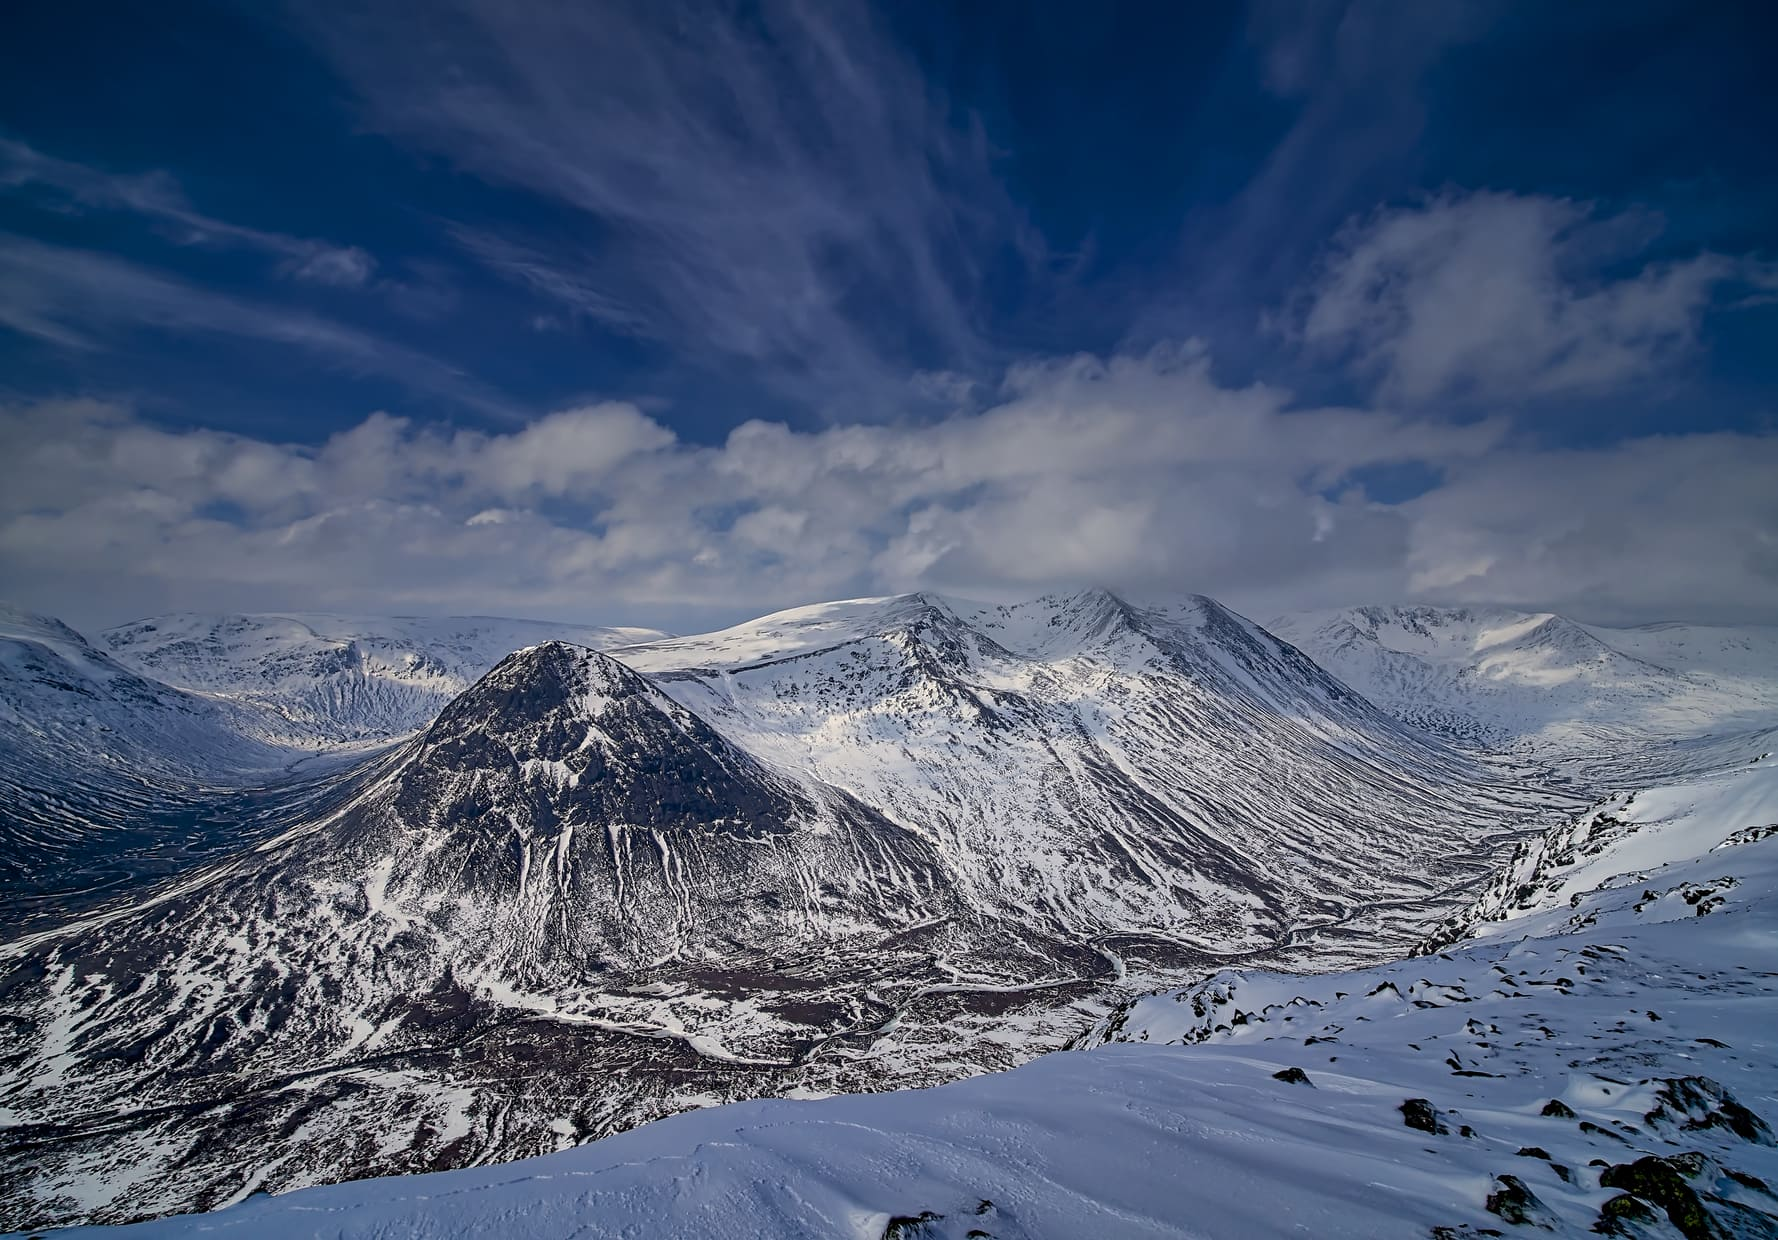 The Lairig Ghru from the summit of Carn a'Mhaim. The Cairngorms, Scotland